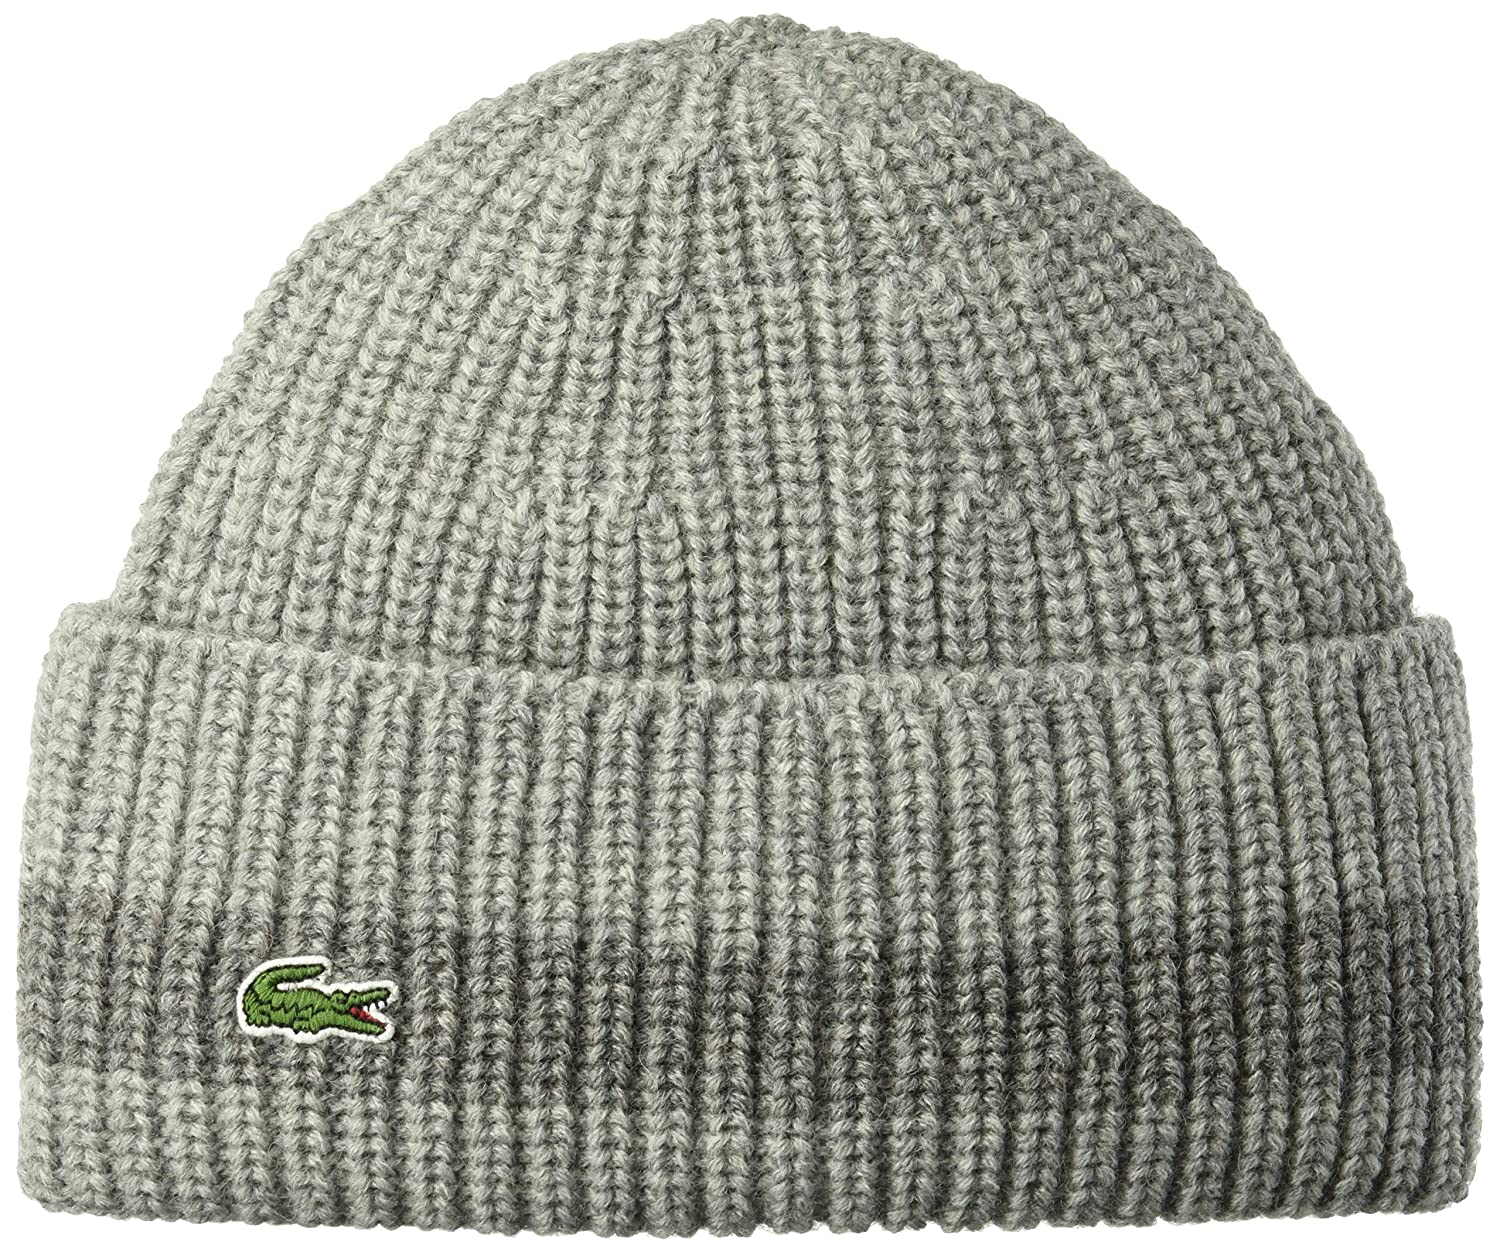 Lacoste Mens Rib Knitted Contrast Beanie Black/Black One Size Lacoste Mens accessories RB2749-51